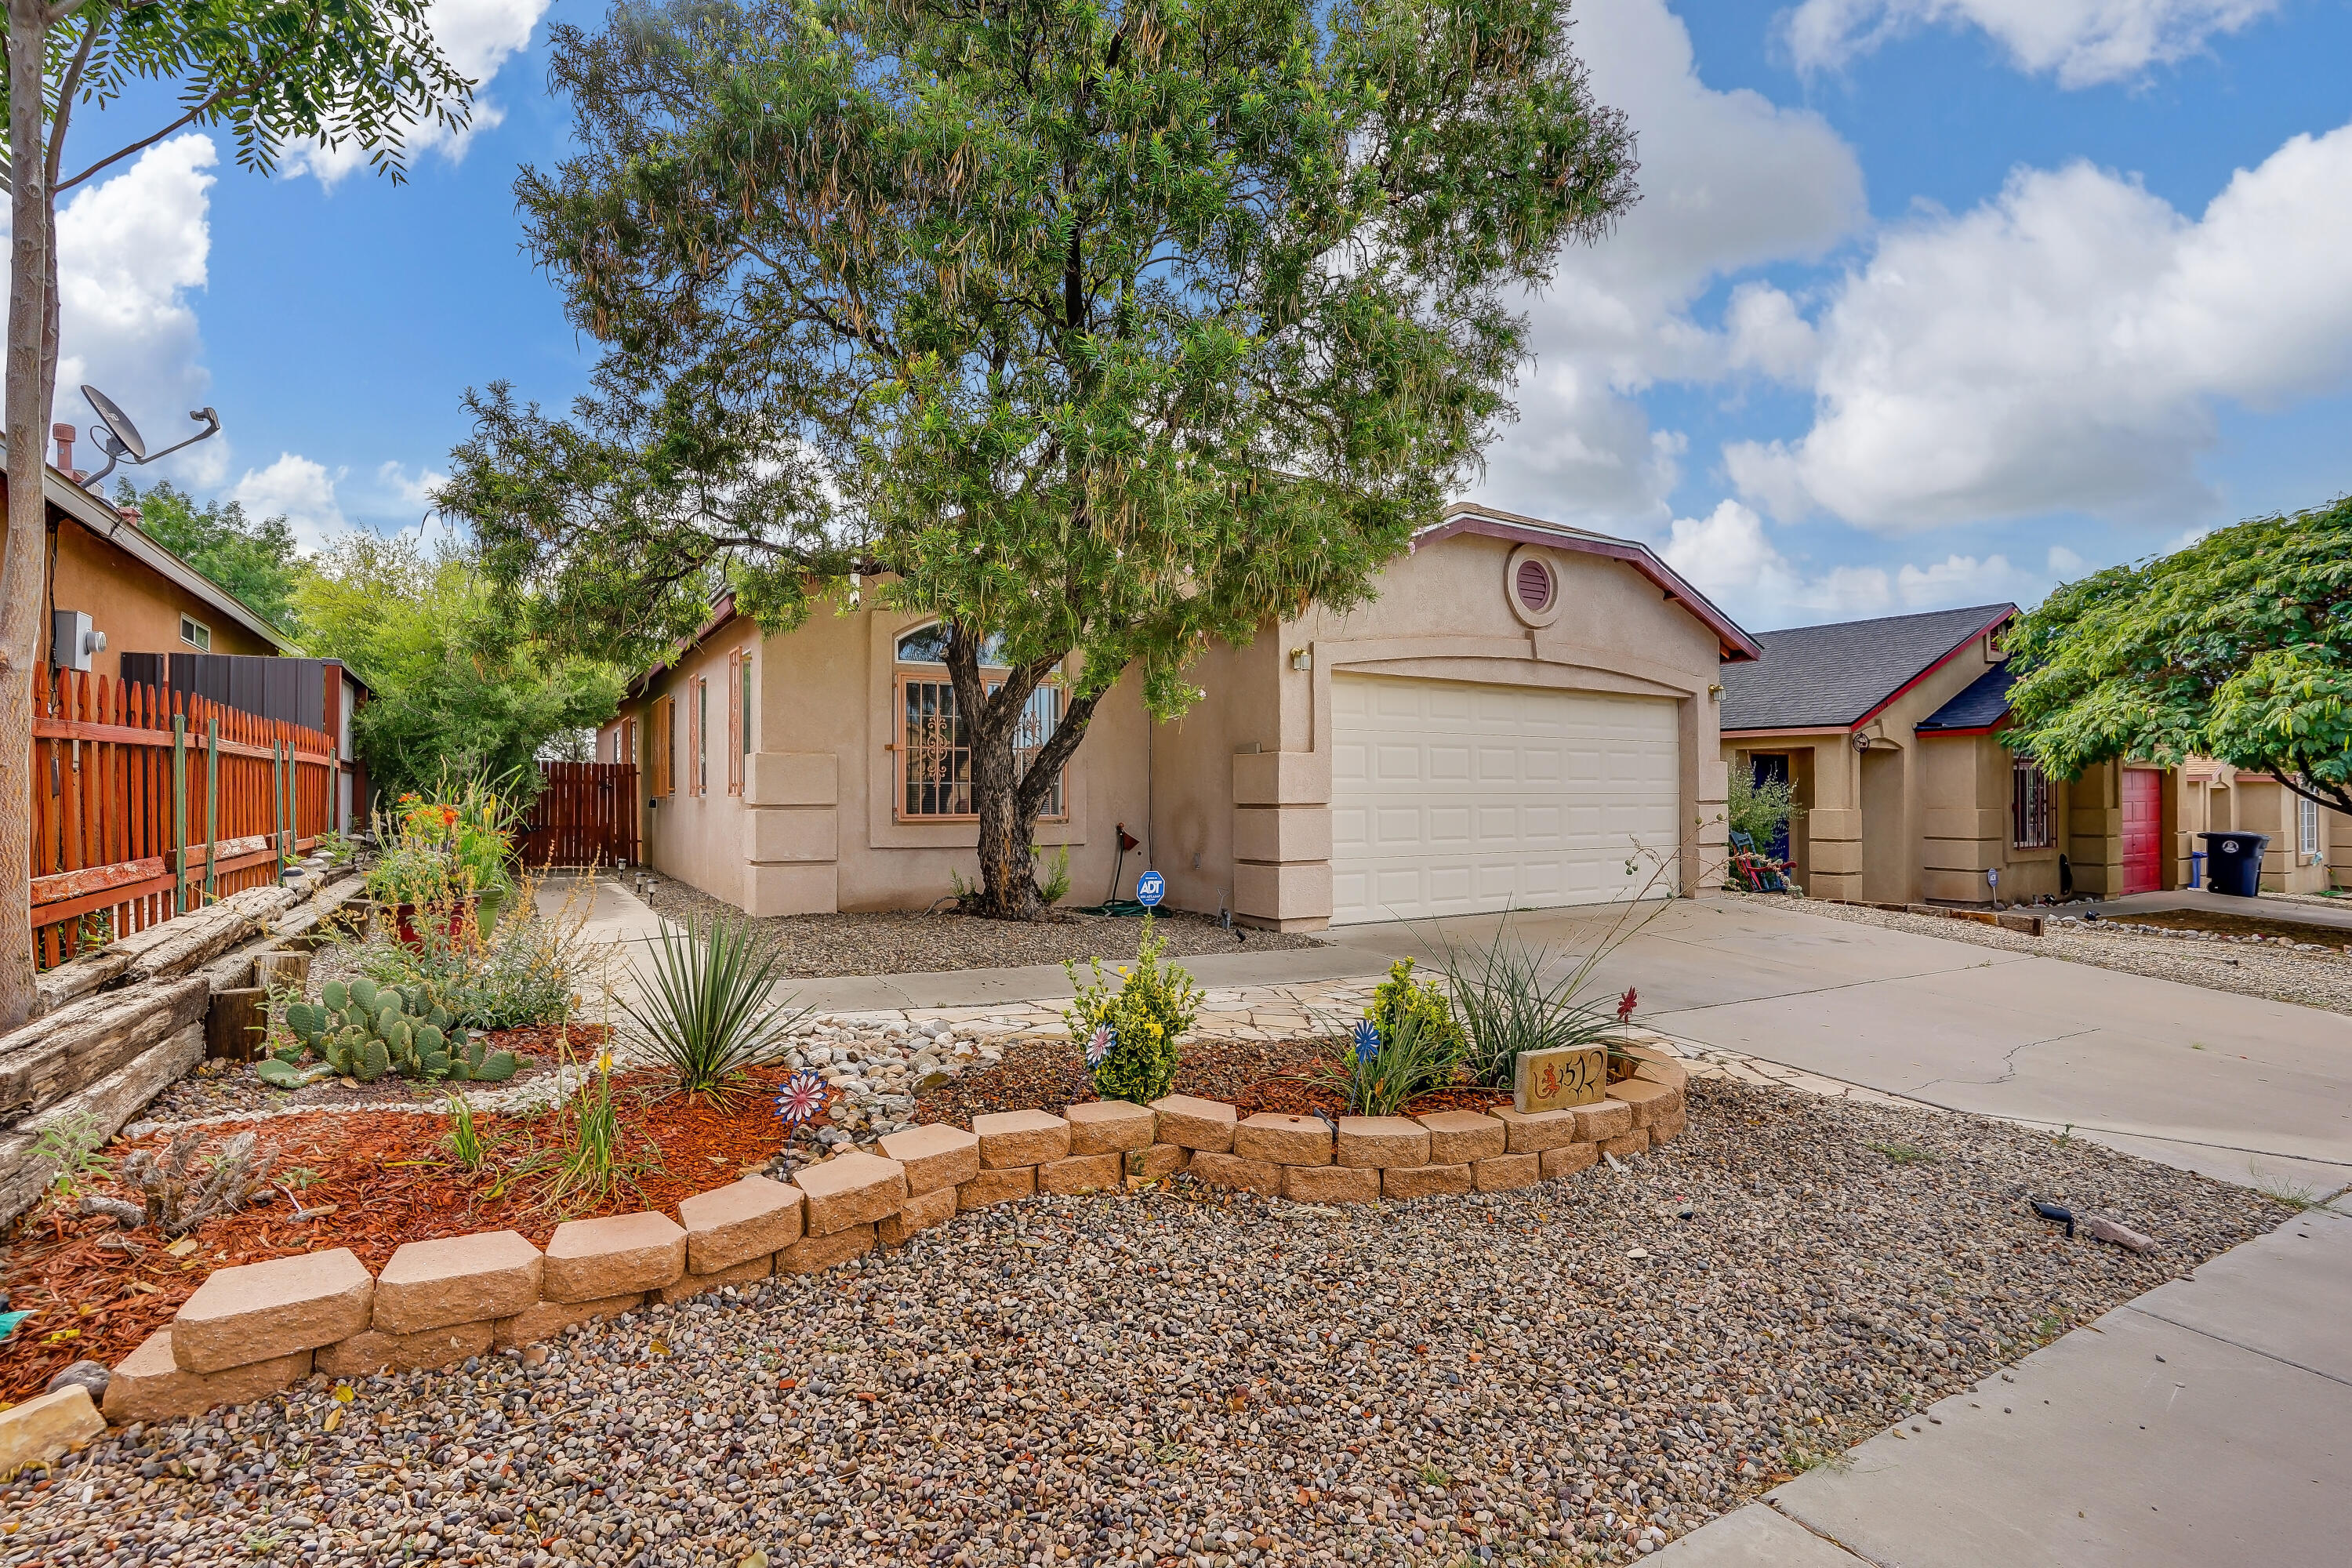 This freshly painted move-in ready home boasts an open floor plan, nichos, arched doorways and cathedral ceilings that provide a large living space. Separate family room area has french doors that open up to the beautifully landscaped and easy to care for backyard. The kitchen w/wrap-counter has plenty of cabinets for storage. The spacious master suite & master bathroom w/walk-in closet, double-sink vanity, separate shower and garden tub. New roof was installed in 2017 and the swamp cooler was replaced in 2019. You won't want to miss this one; make an appointment to see it today!